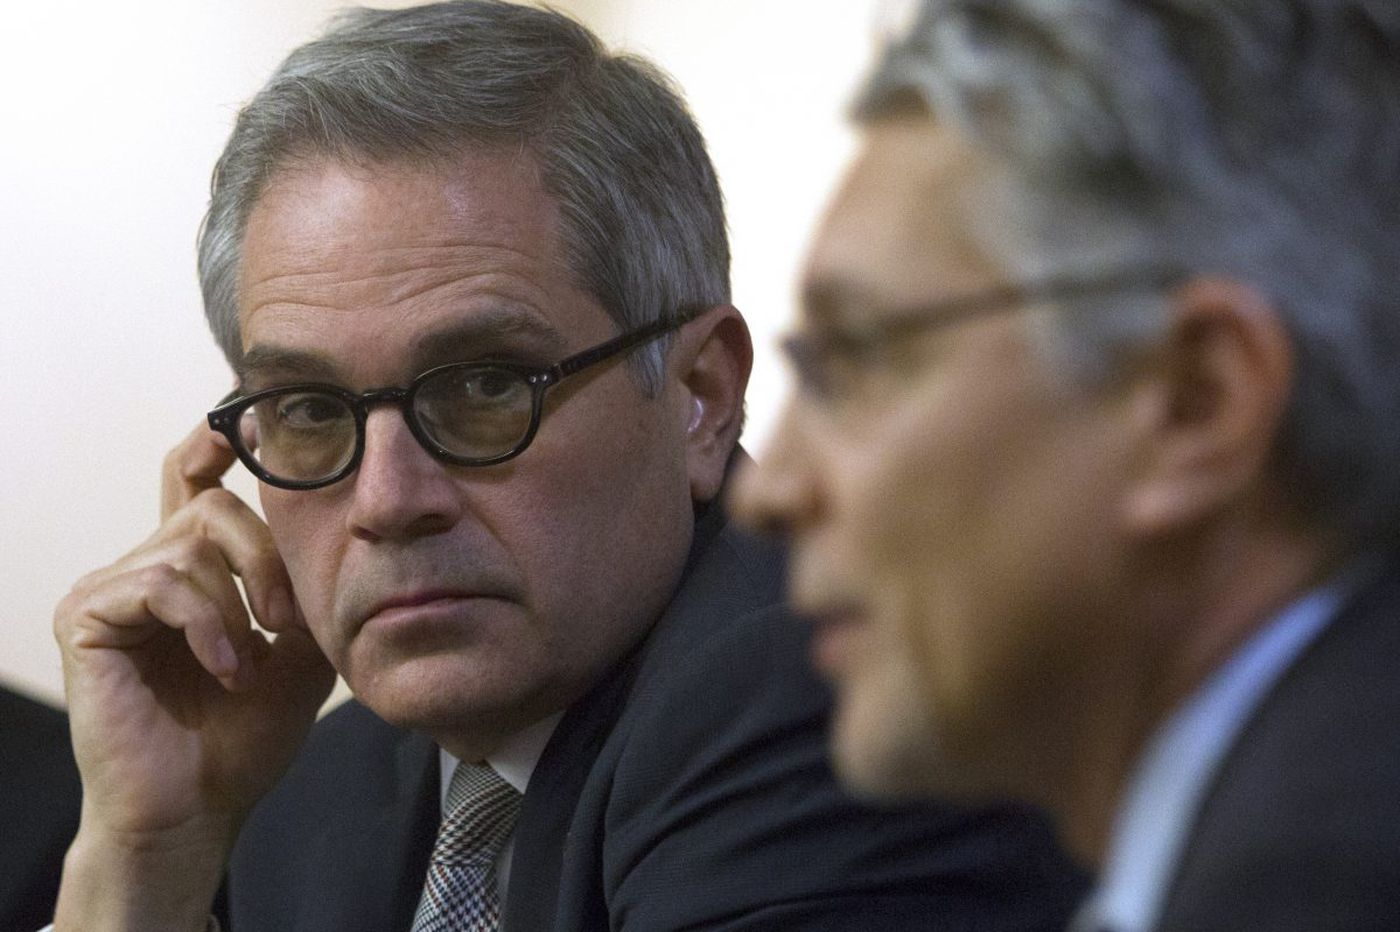 New DA Krasner on ousters: 'The coach gets to pick the team'